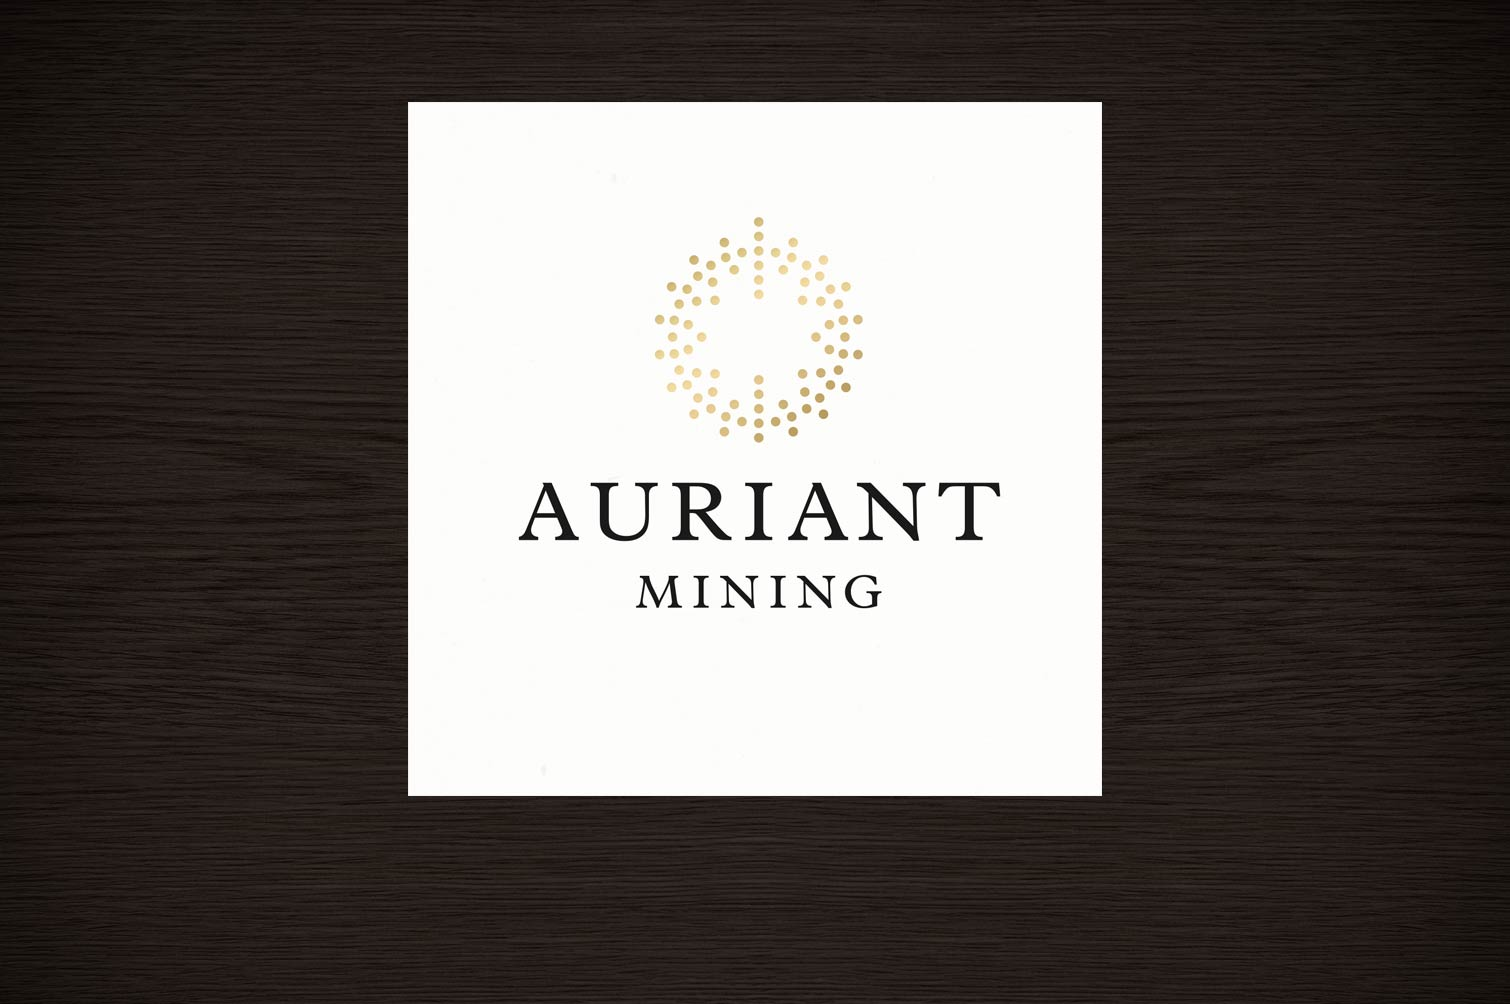 Auriant Mining corporate identity